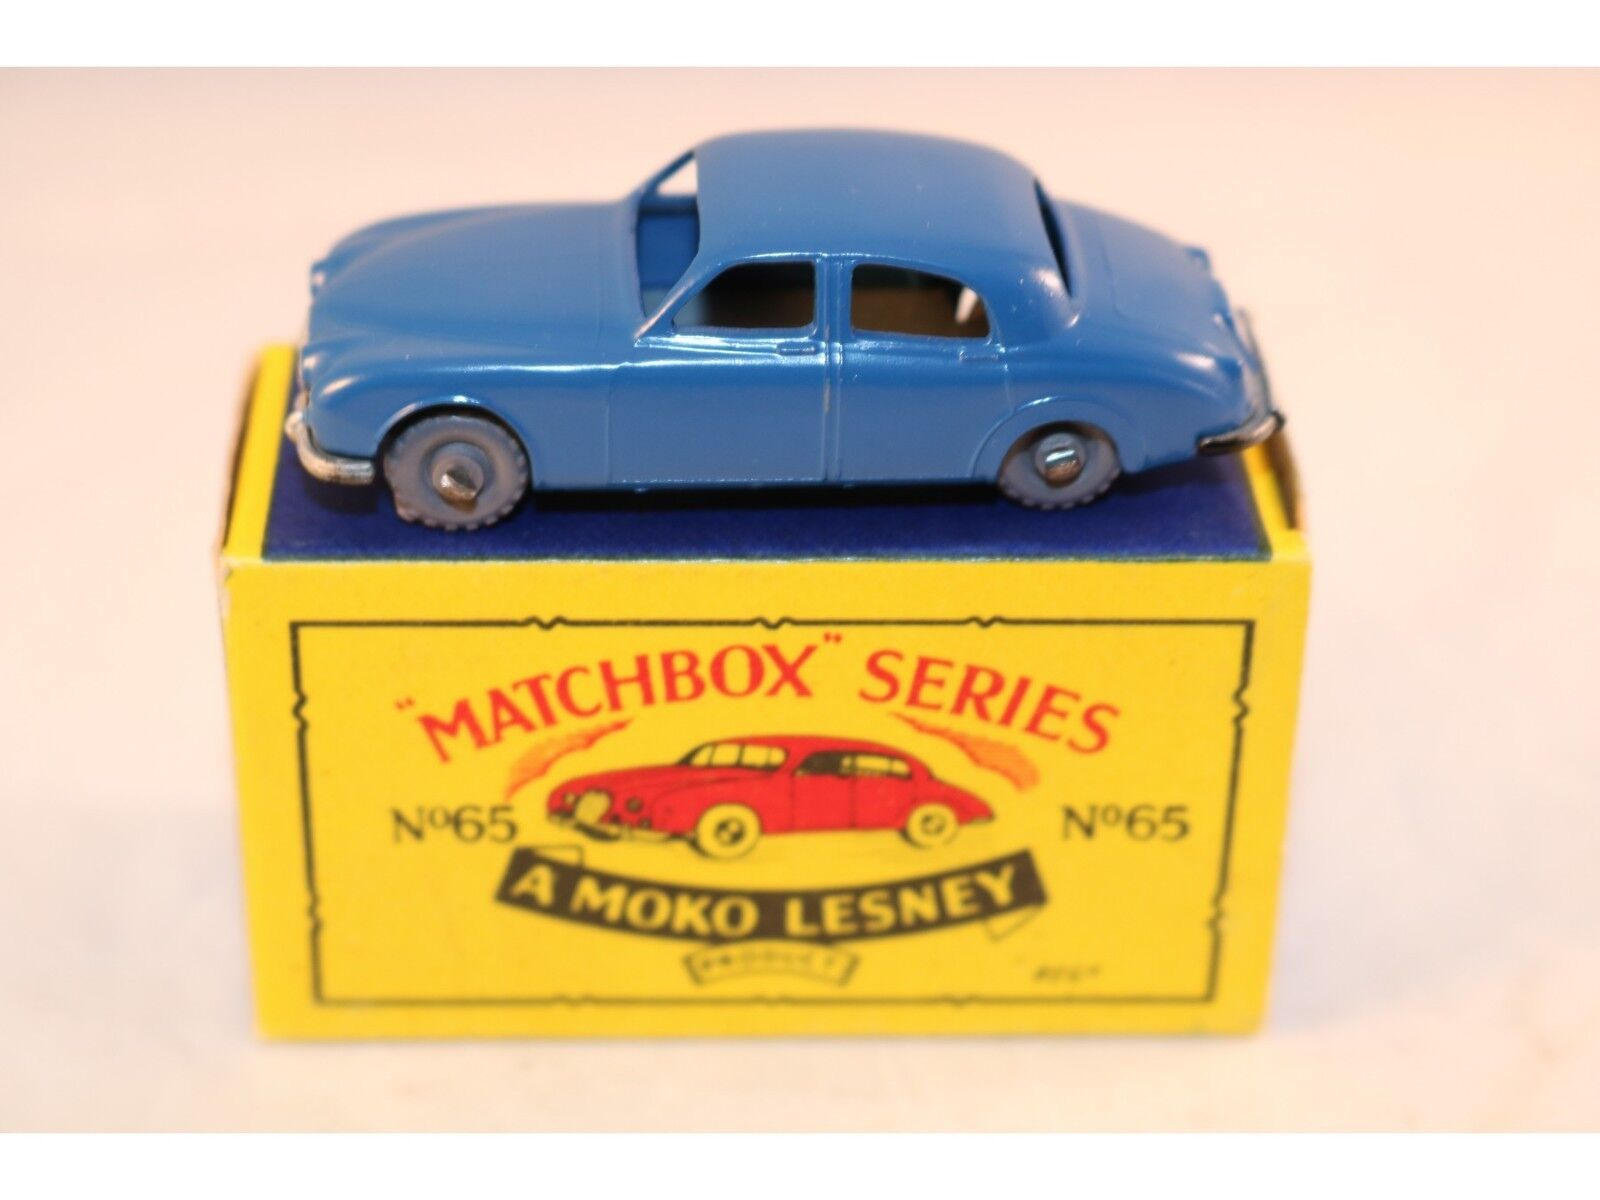 Matchbox A Moko Lesney No 65 Jaguar 3,4 litre with GPW perfect mint in box